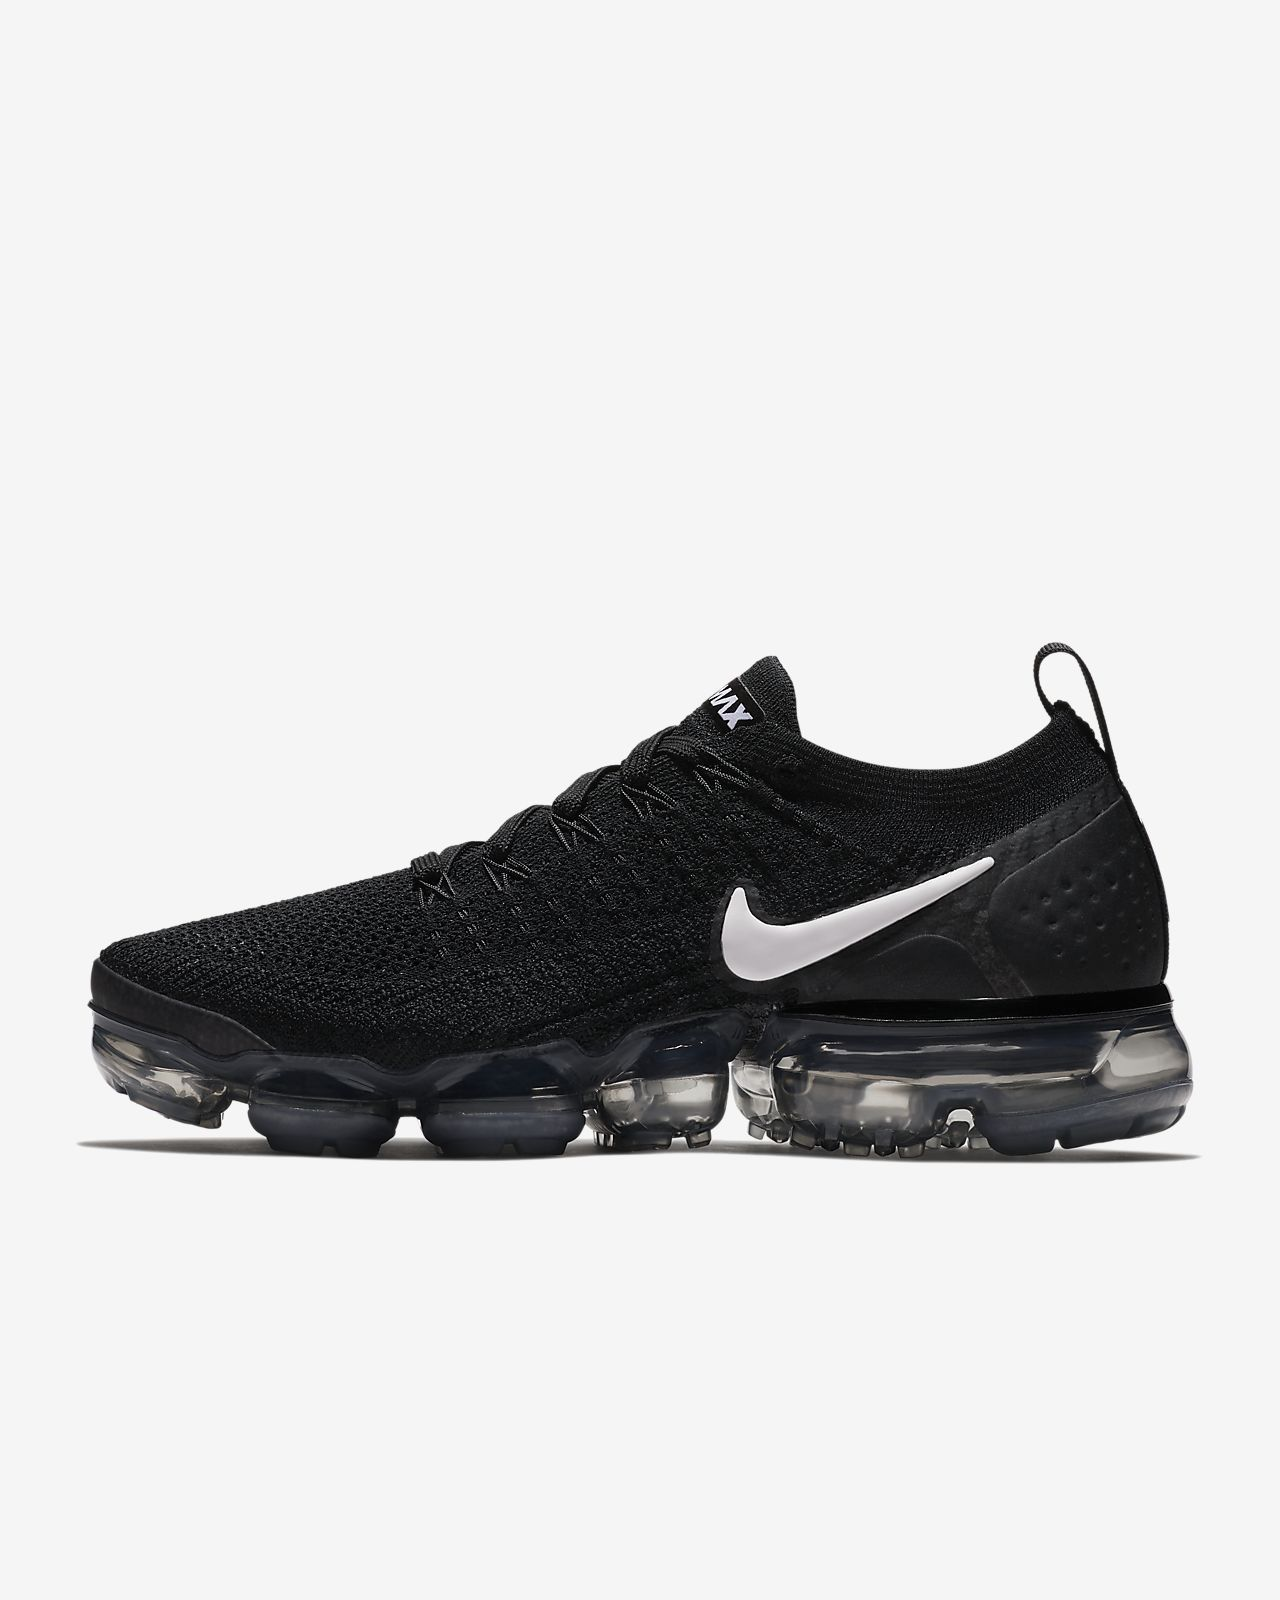 b0a36da23b5cc Womens Nike Air VaporMax Flyknit 2 Running Shoe Black Dark Grey Metallic  Silver White Style  942843-001